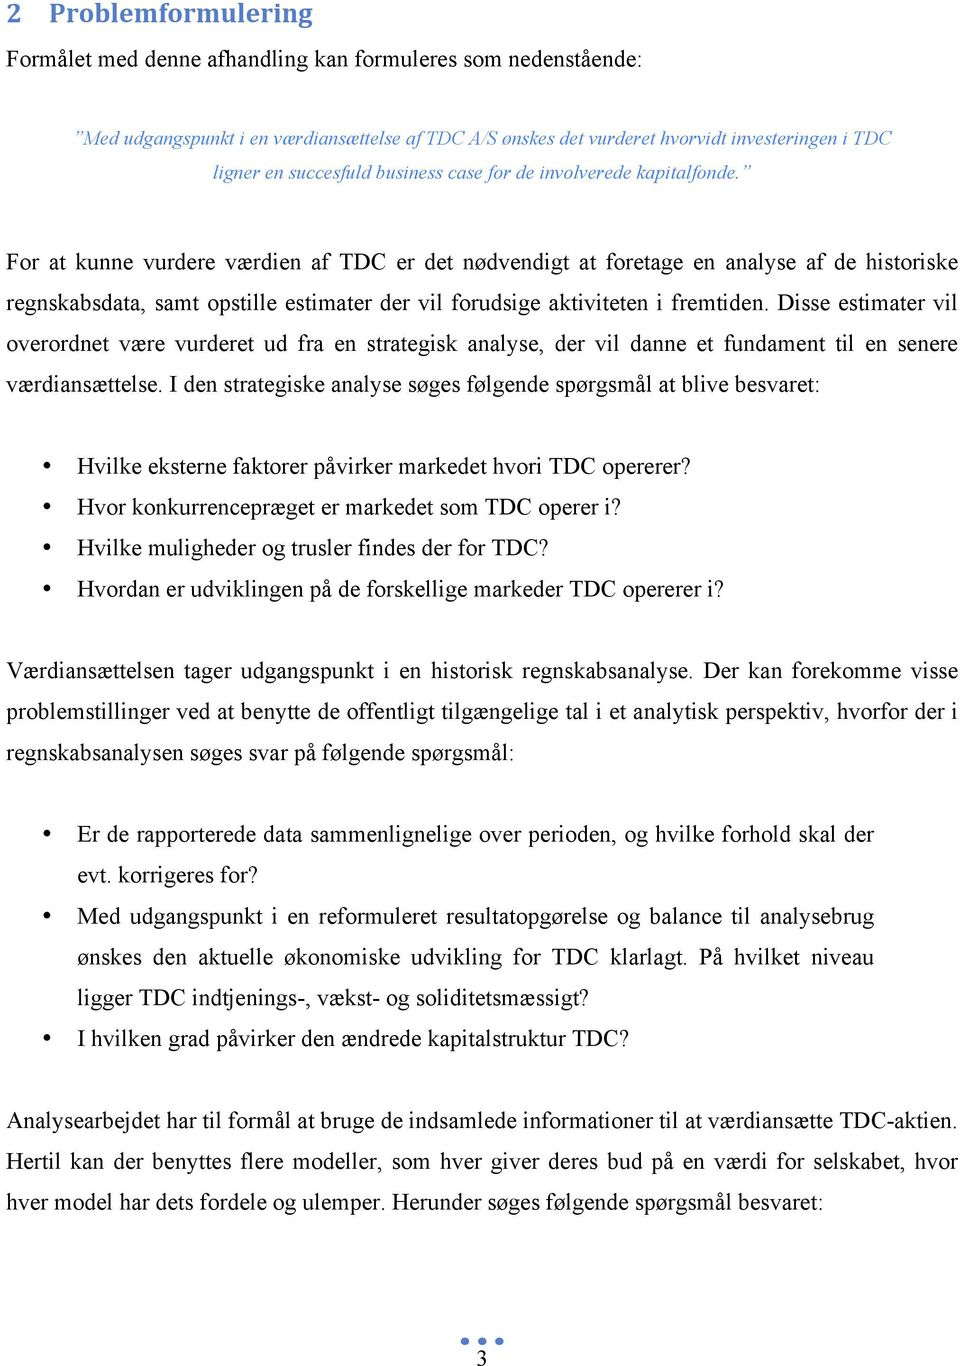 case for de involverede kapitalfonde.